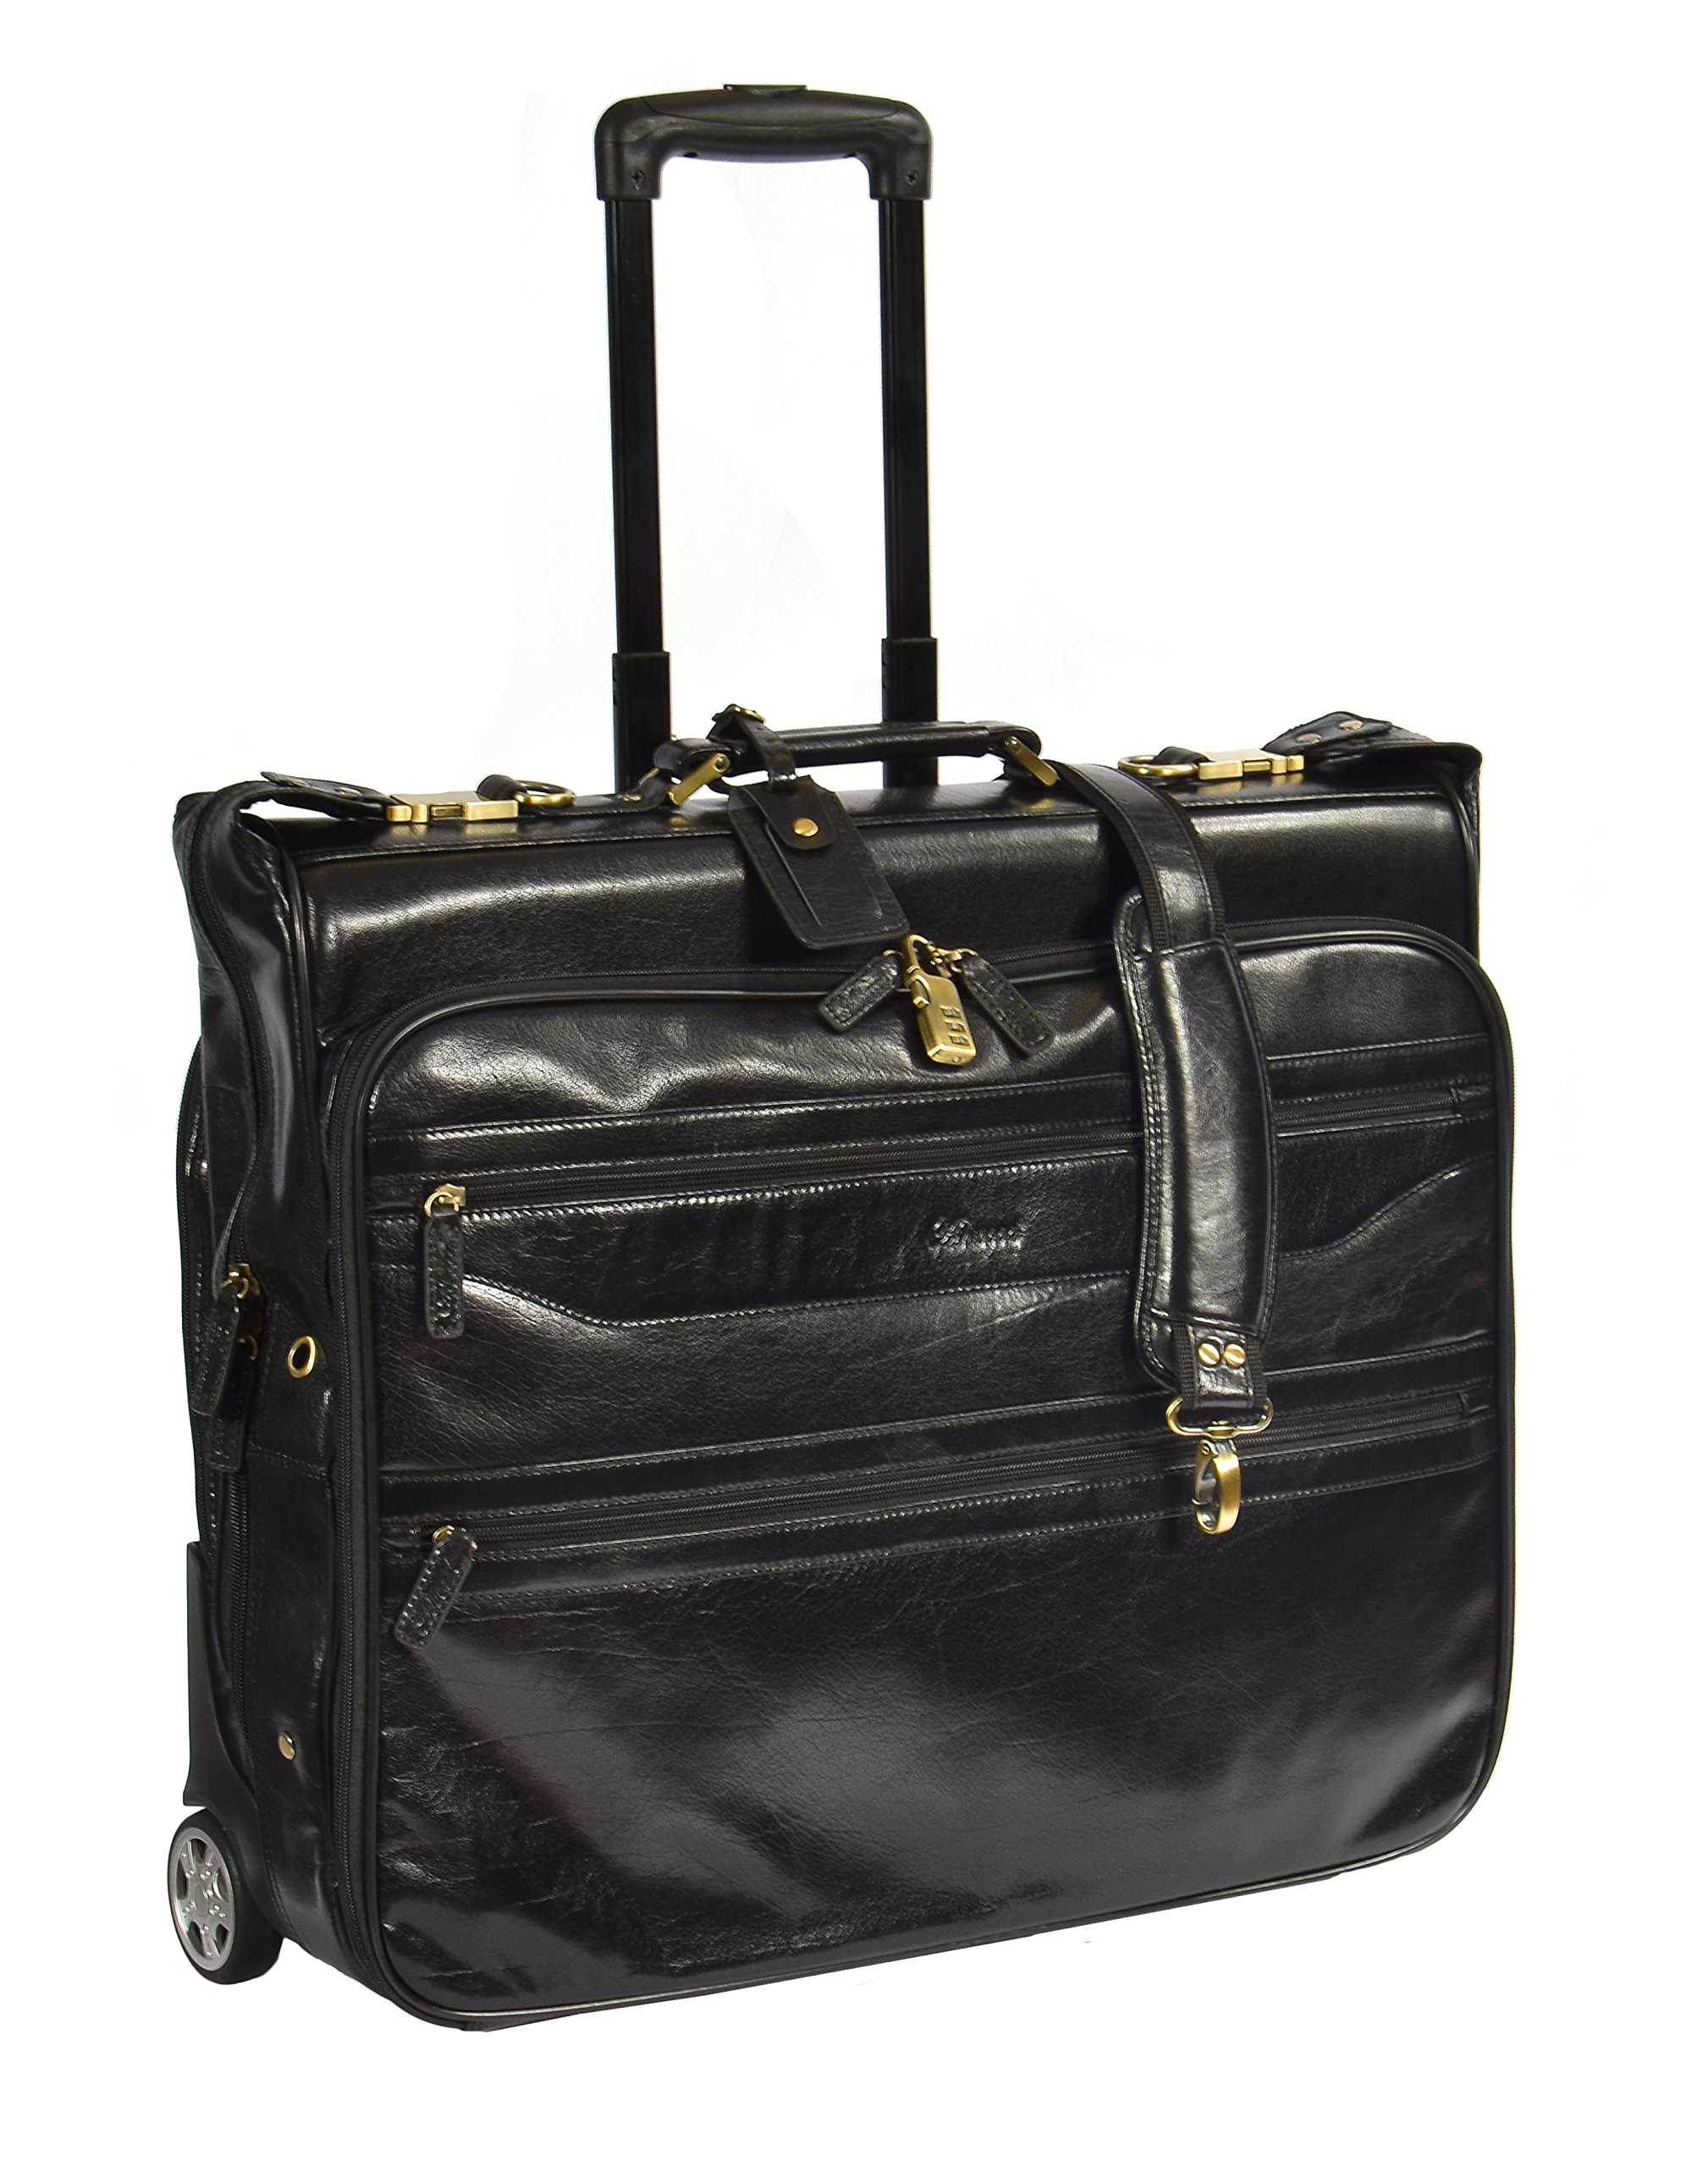 Real Leather Suit Garment Dress Carrier Travel Weekend Bag On Wheels A1236 Black